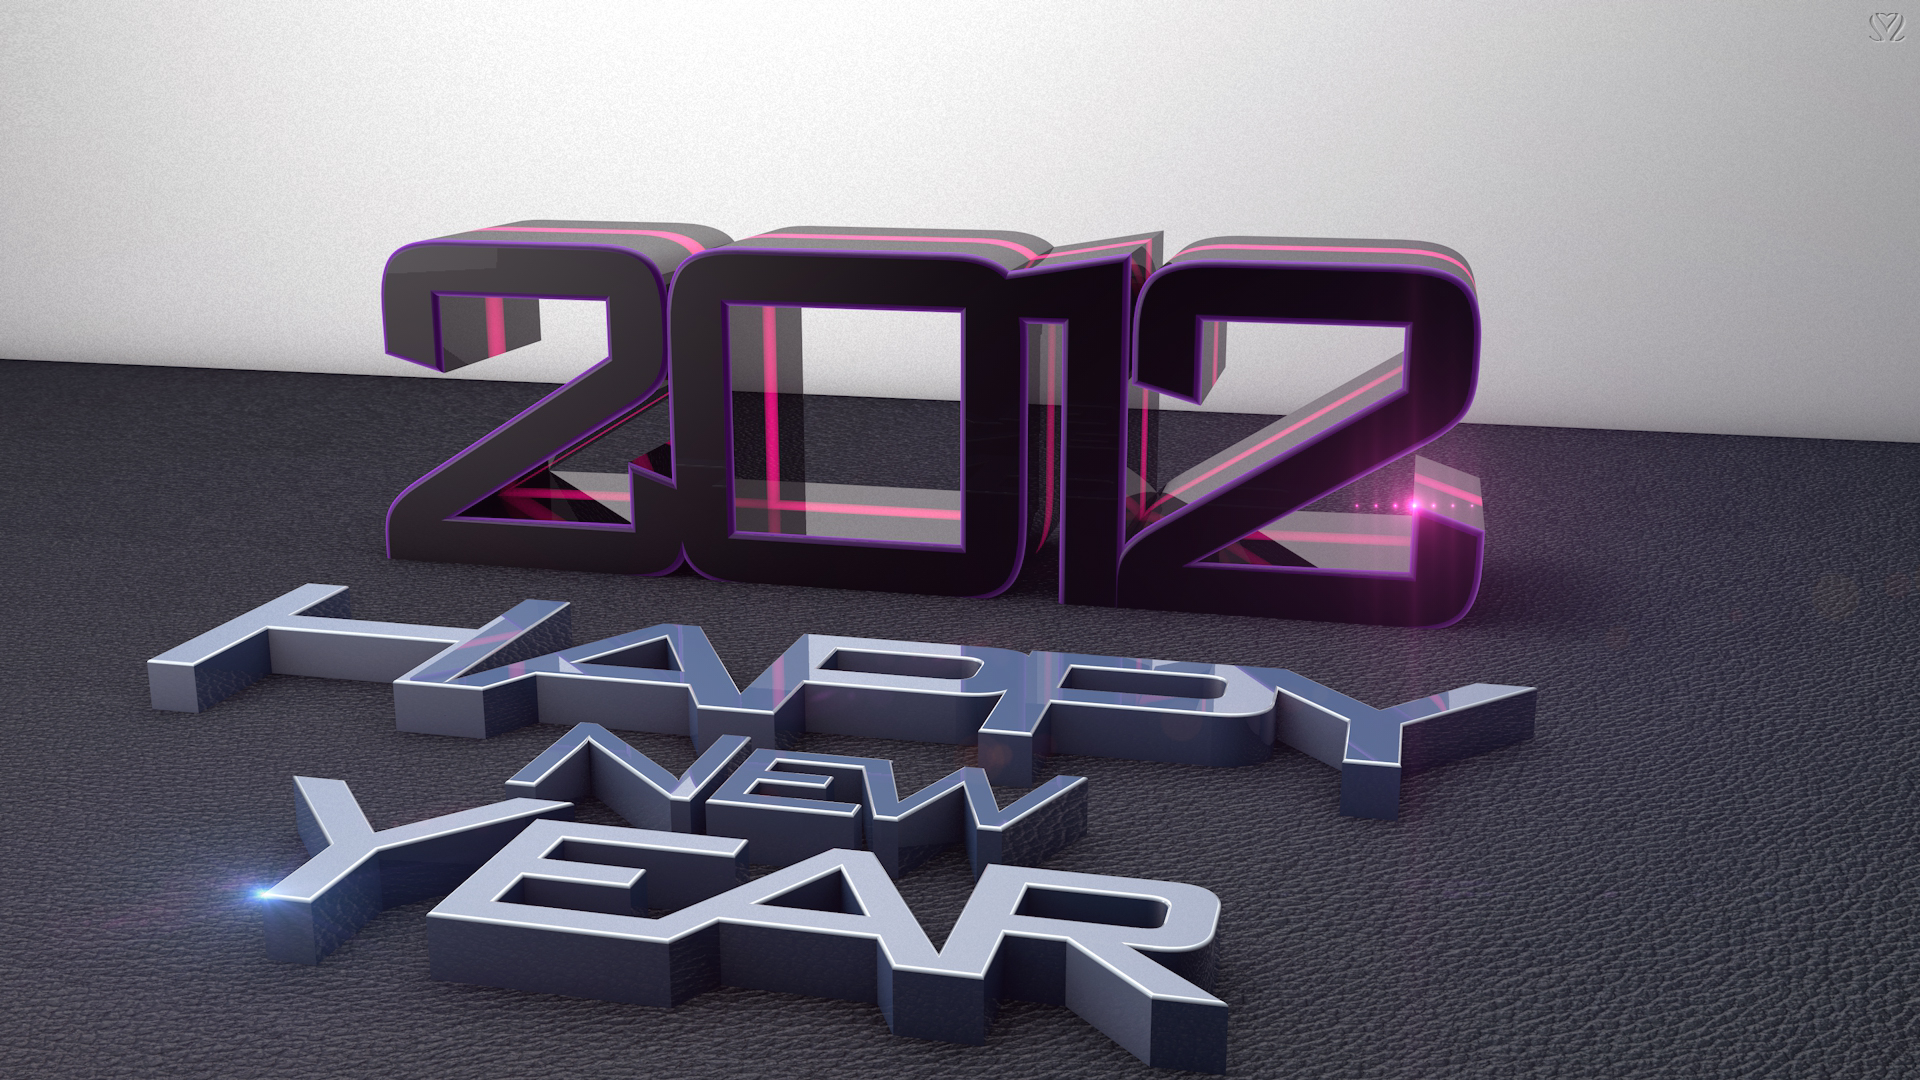 http://thehaphazard.files.wordpress.com/2011/12/new-year-2012-hd-wallpapers-7.jpg